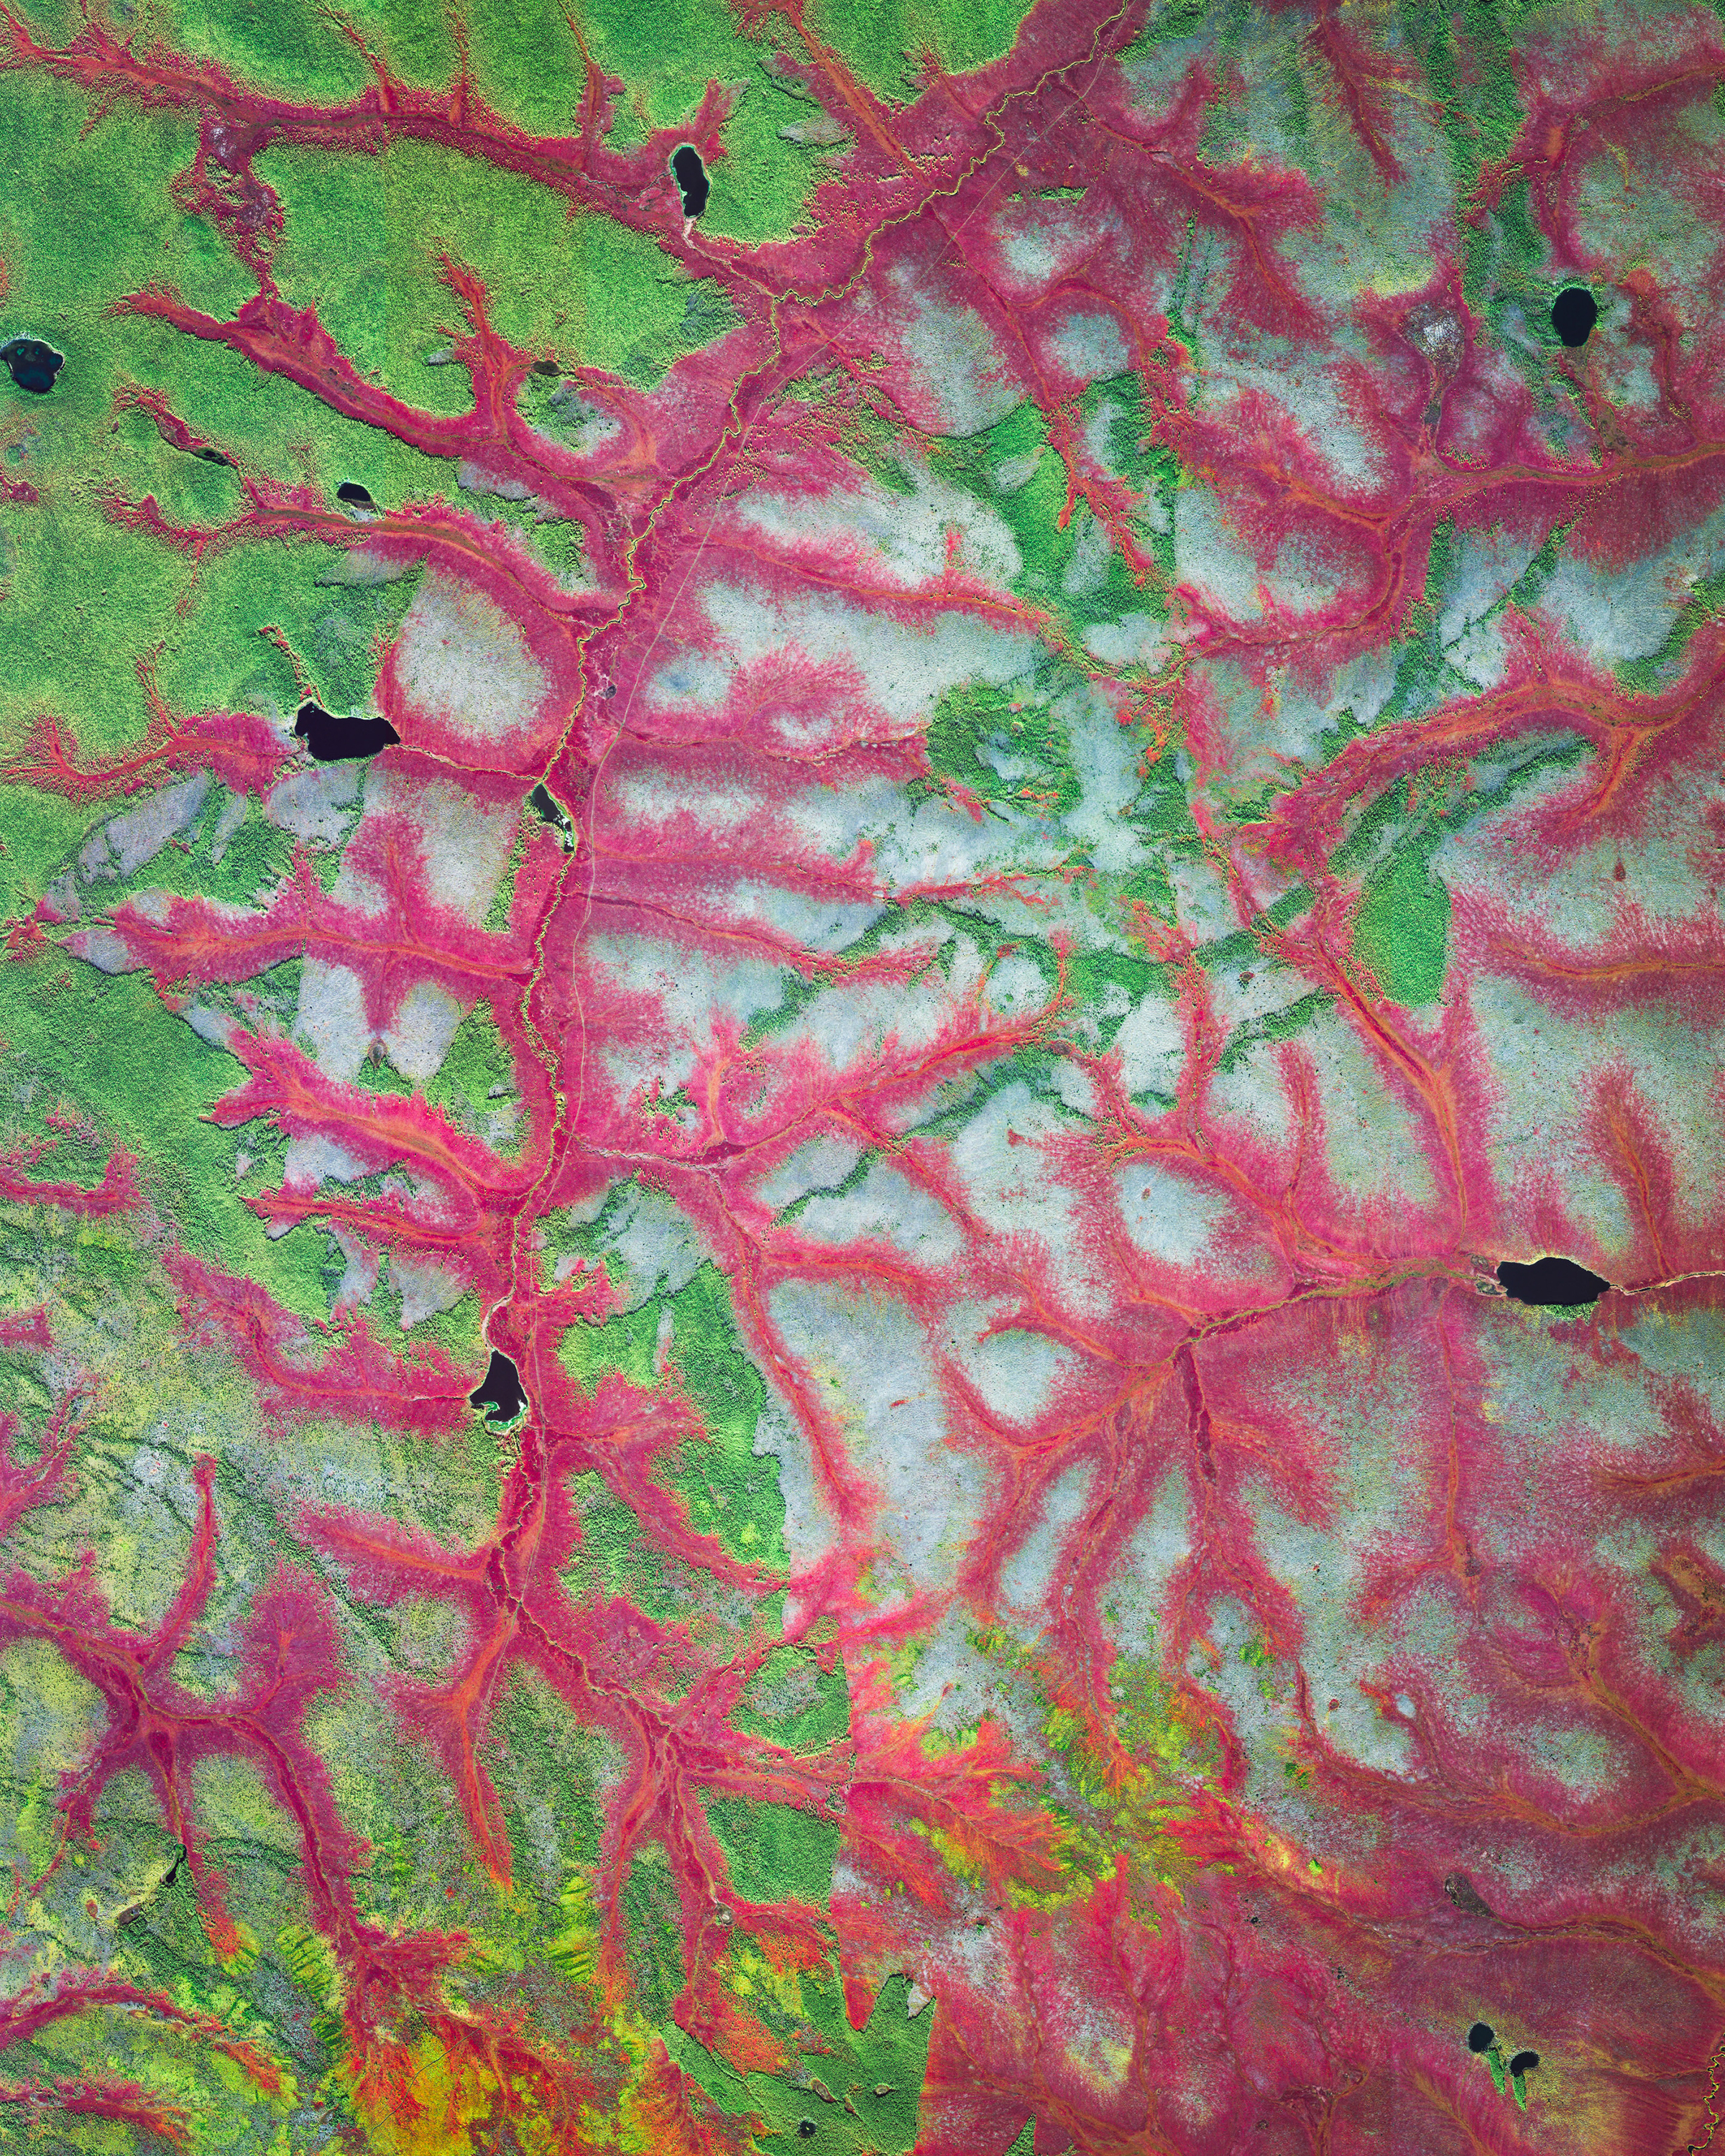 This Overview shows vibrantly colored lichens and mosses in Russia's Sakha Republic, also known as Yakutia. This vegetation provides sustenance for reindeer, which many locals rely on for milk and meat. This particular area is located in the Arctic Circle, roughly 650 miles (1,046 km) northeast of Yakutsk — the Republic's capital city — and has an average January temperature of -41.3 °F (-40.7 °C).  67.875700°, 147.106200°  Source imagery: Maxar Technologies